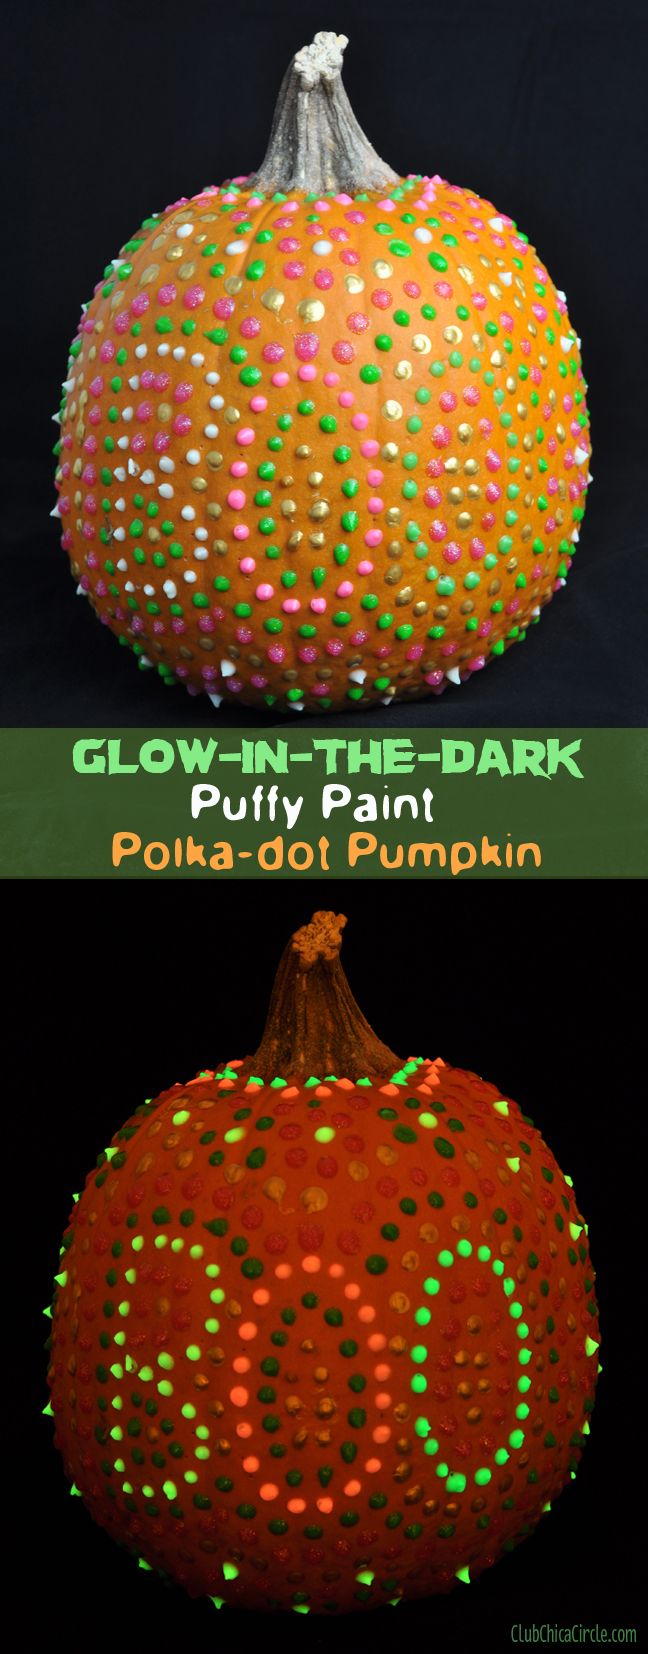 Puffy paint designs - Best 25 Puffy Paint Ideas Only On Pinterest Shaving Cream Art Puffy Paint Crafts And Homemade Puffy Paint